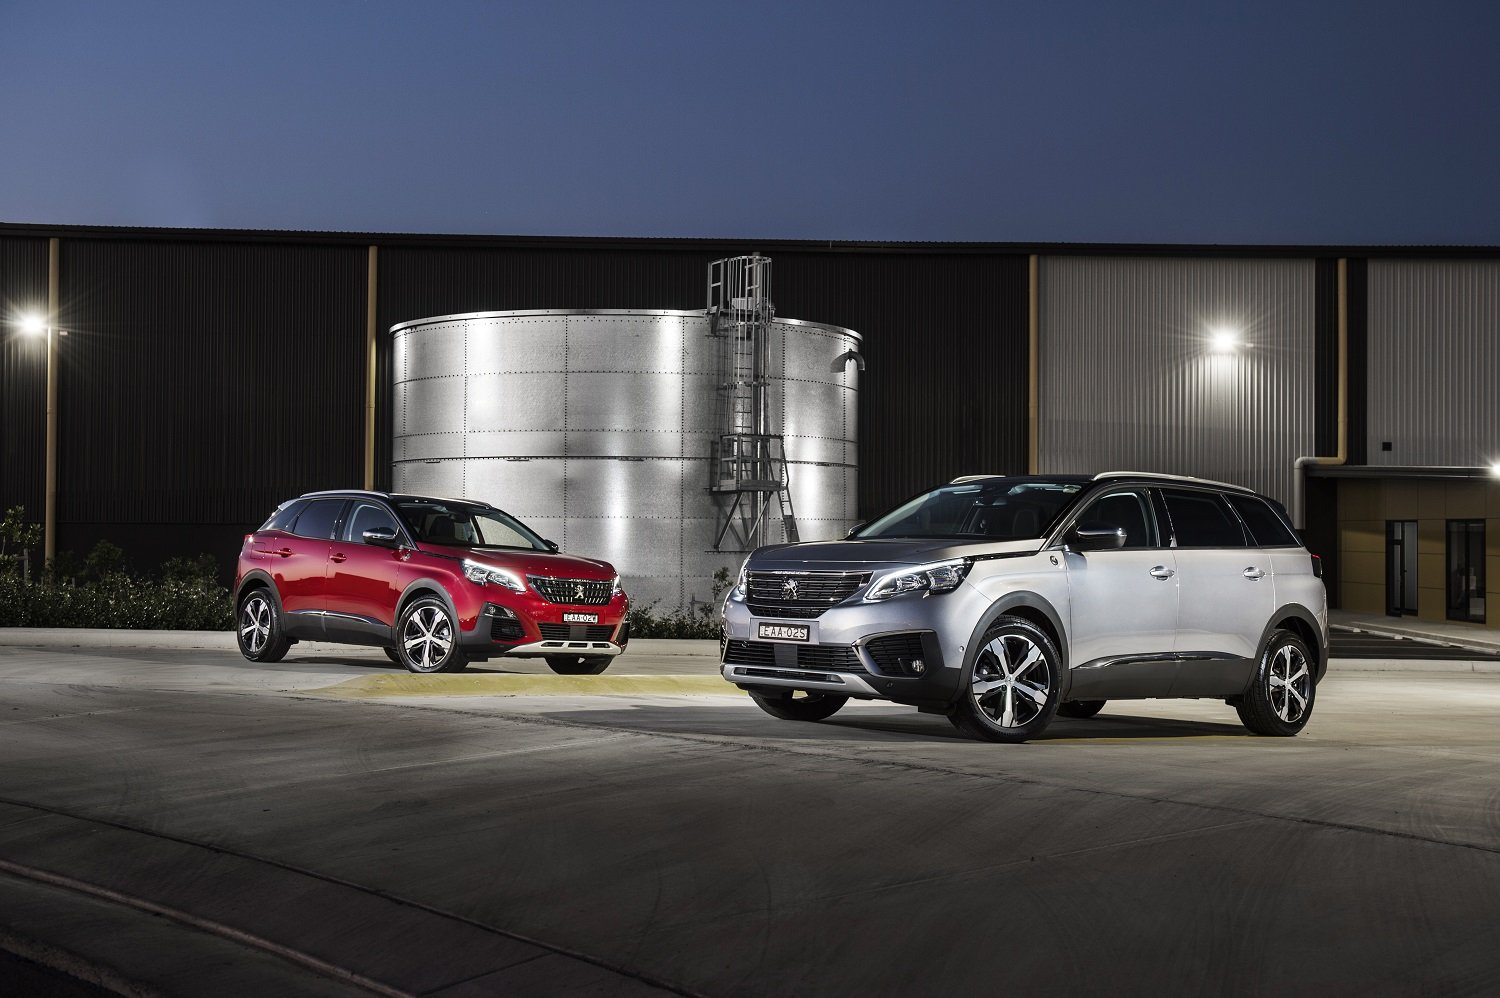 2019 Peugeot 3008 and 5008 Crossway Edition